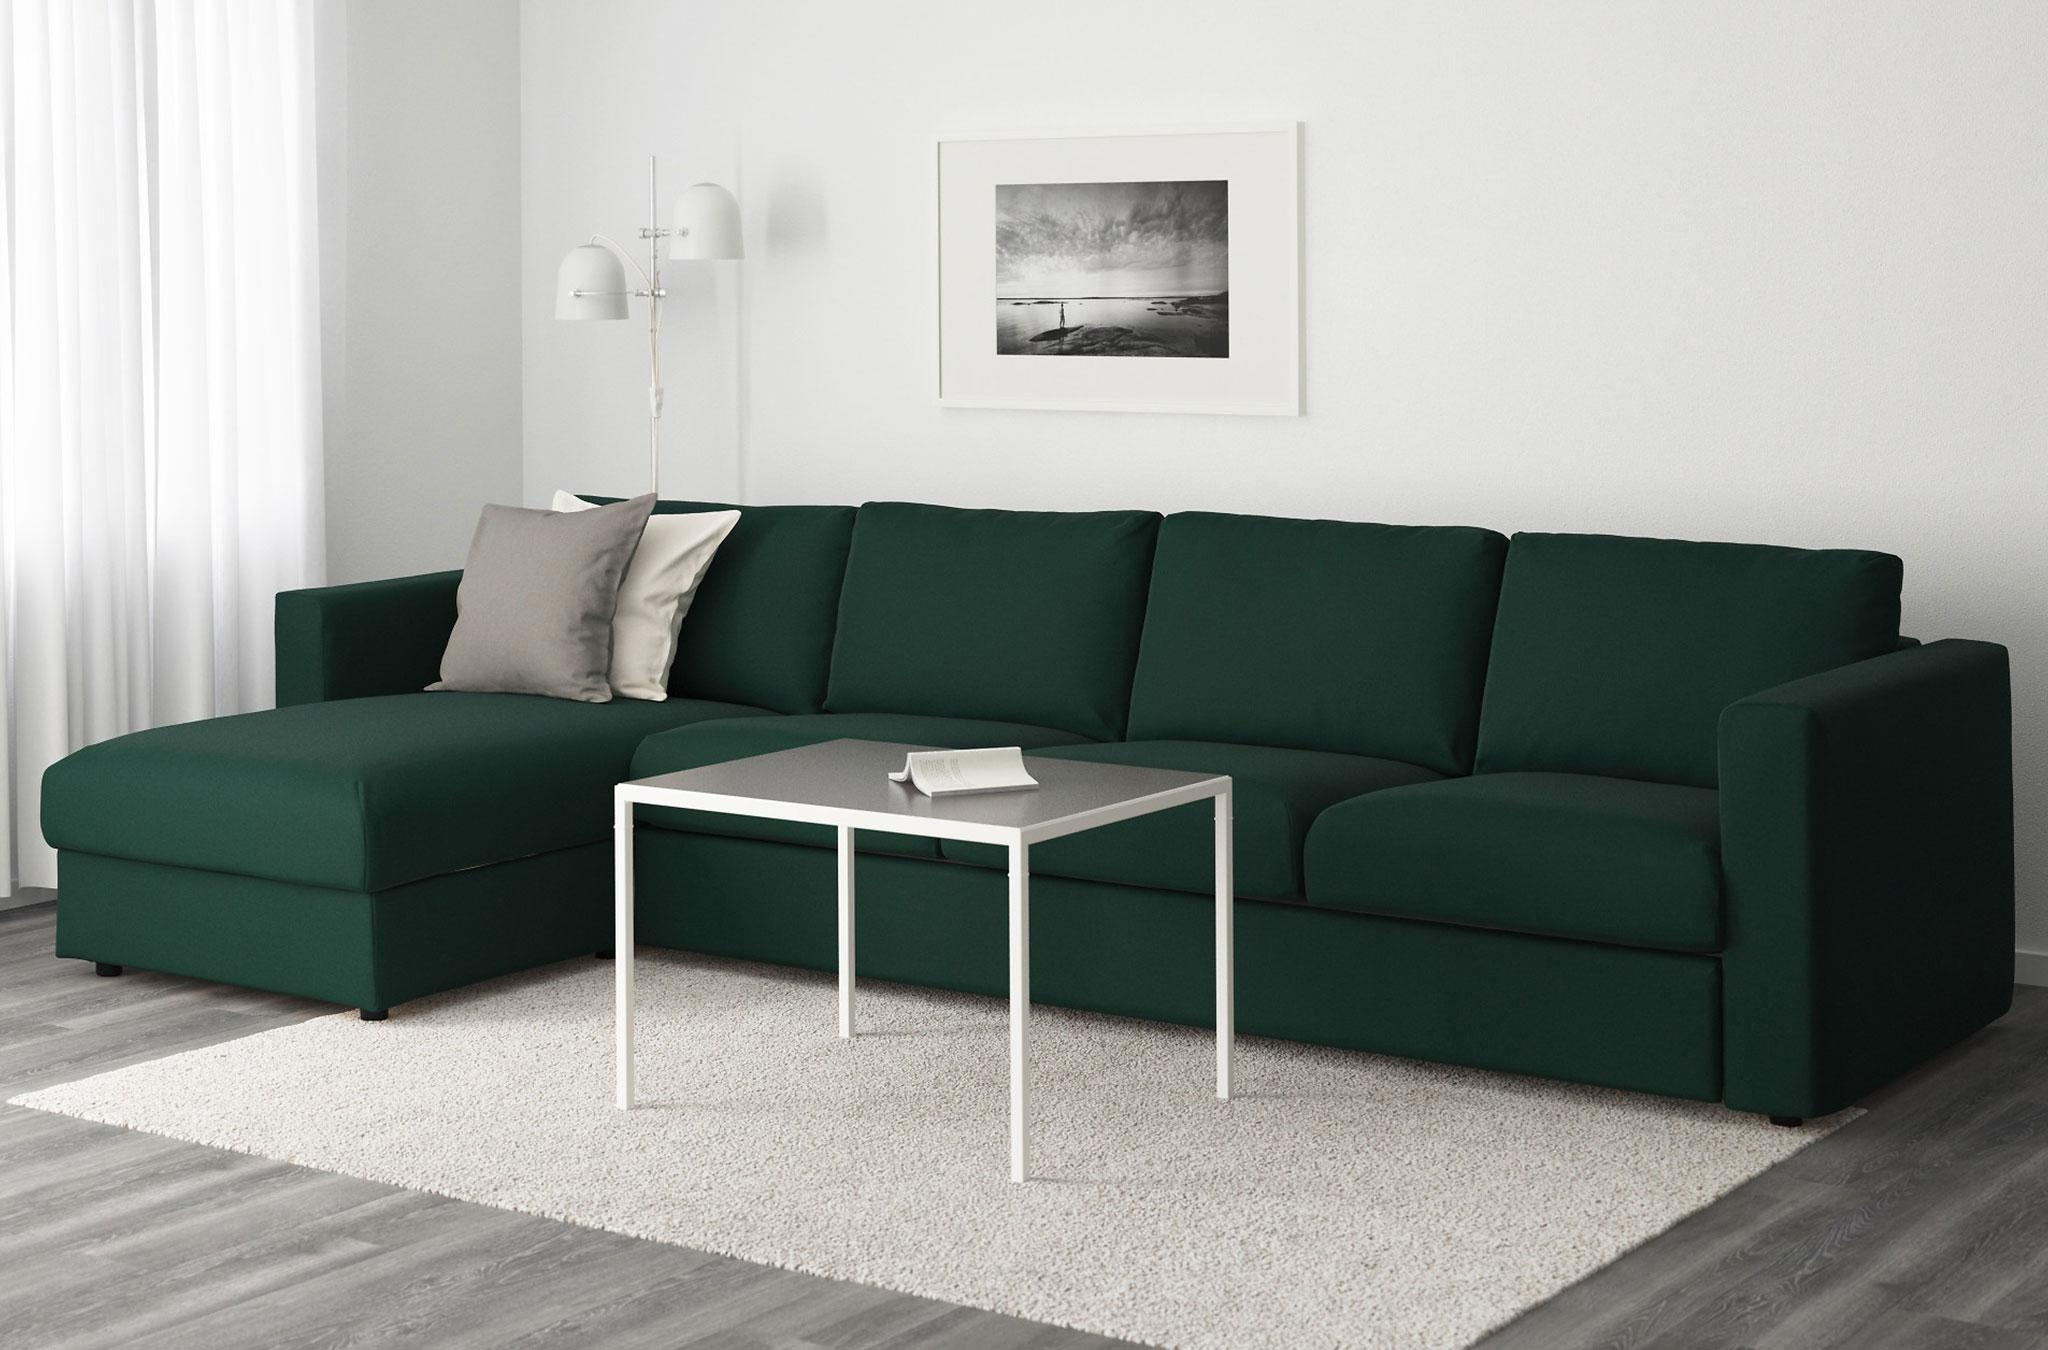 Modular Furniture 2018 Latest Modular Sofas Sofa Ideas